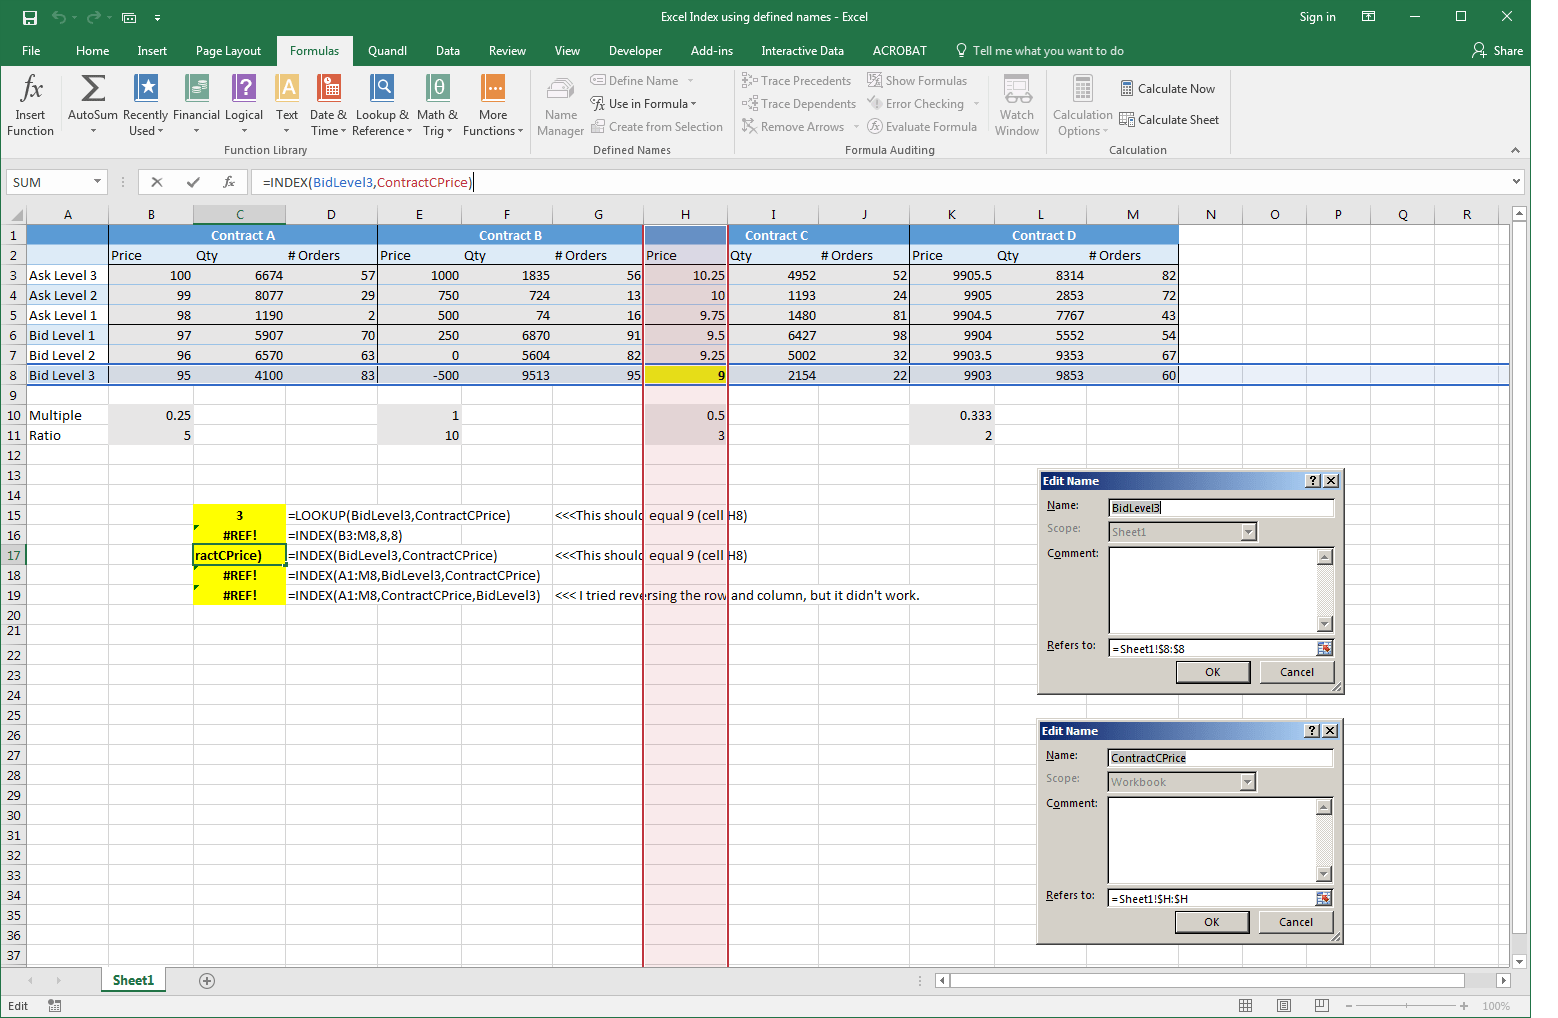 Excel Using Index Function With Defined Names To